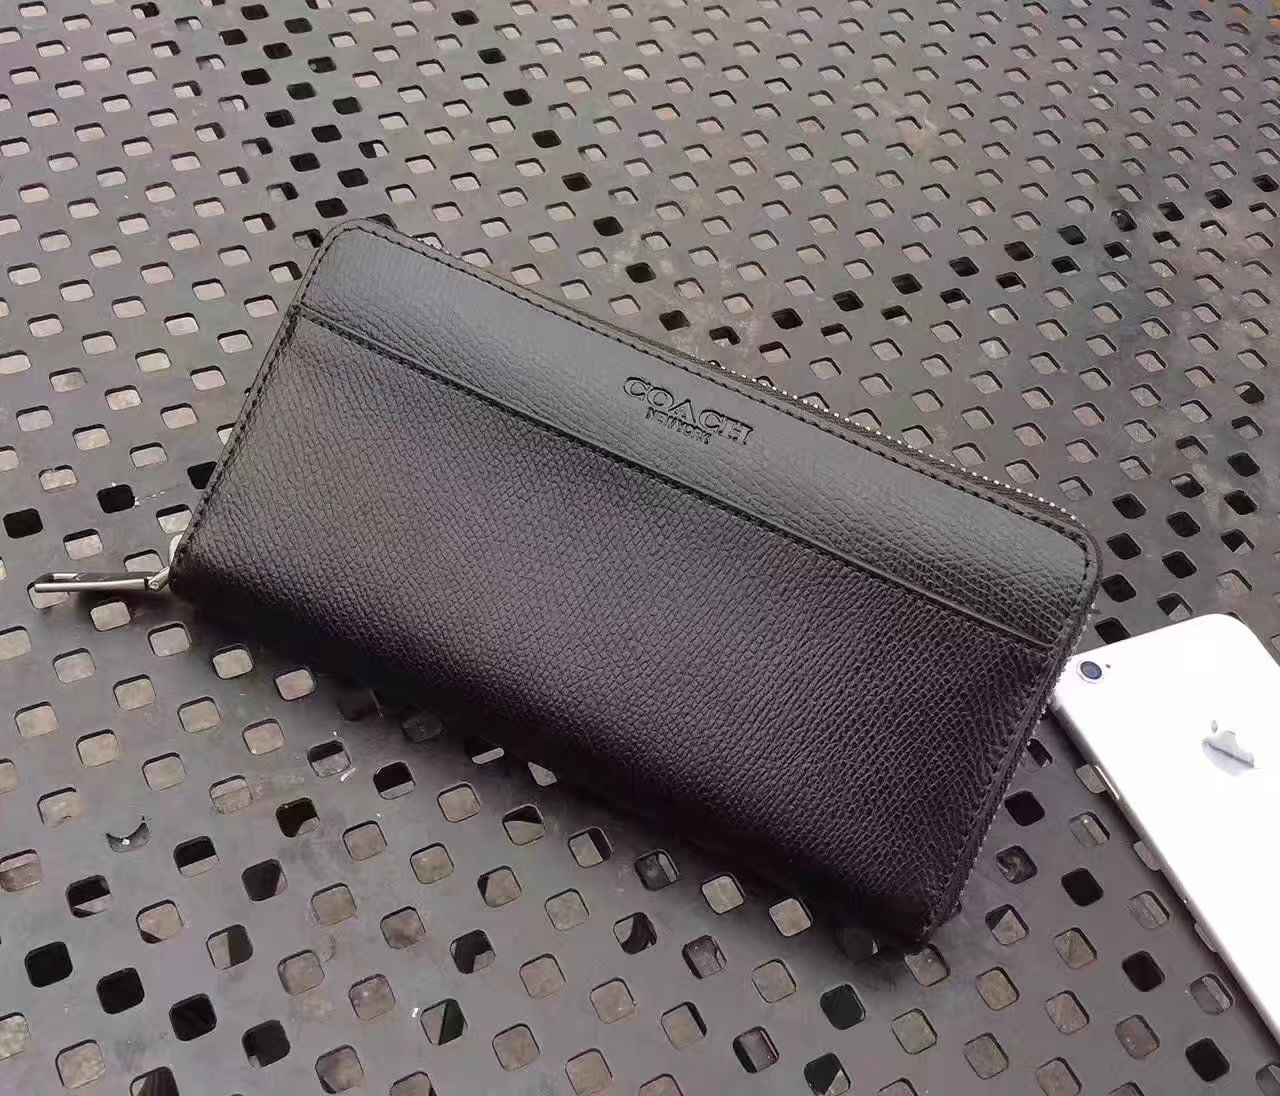 Oringial Coach Accordion Wallet in Sport Calf Leather